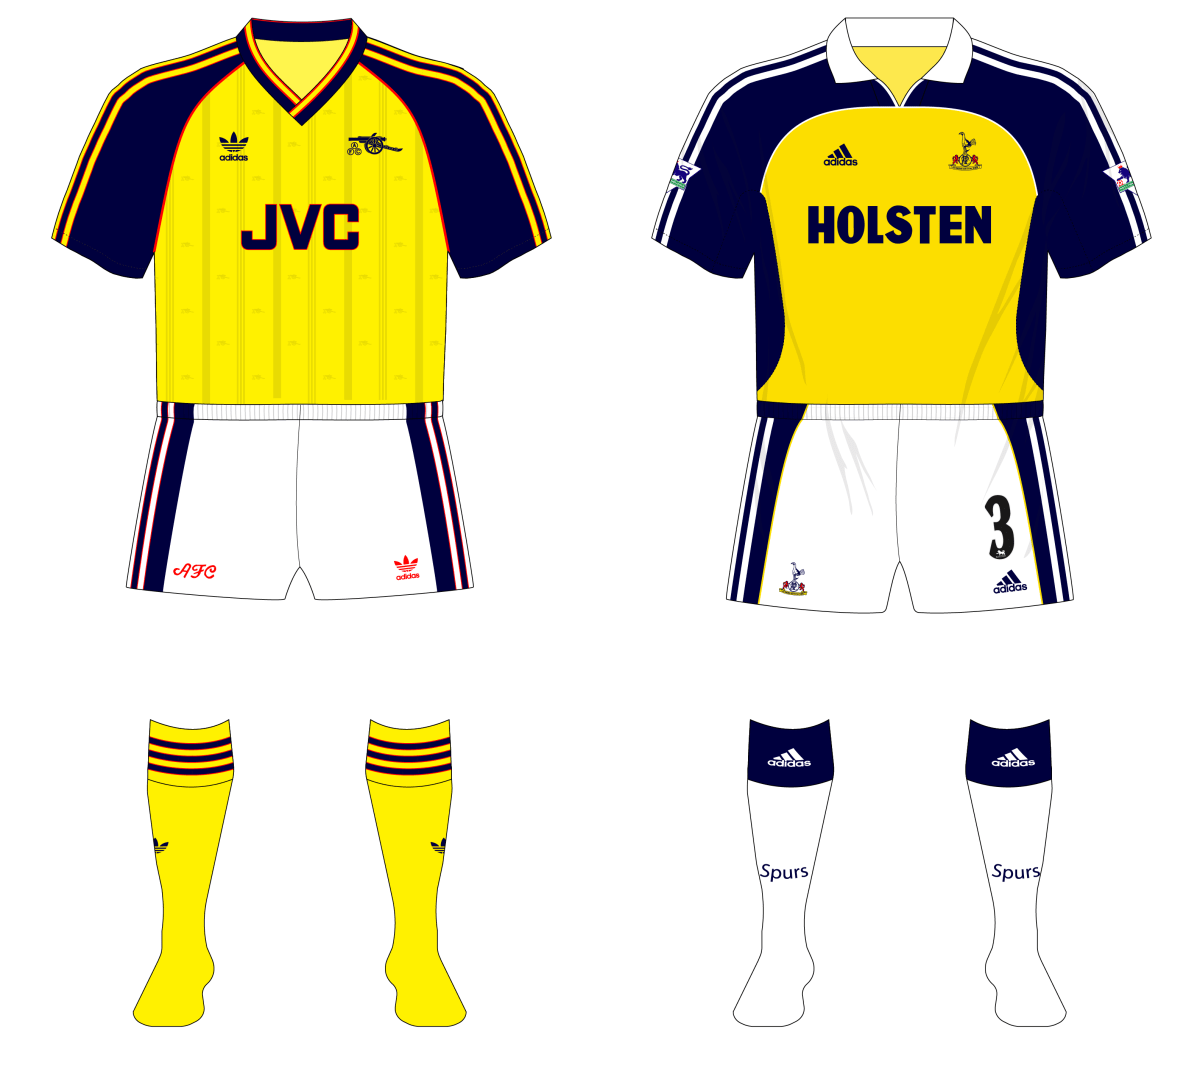 Lookalikes No 5 Arsenal And Tottenham Hotspur Museum Of Jerseys